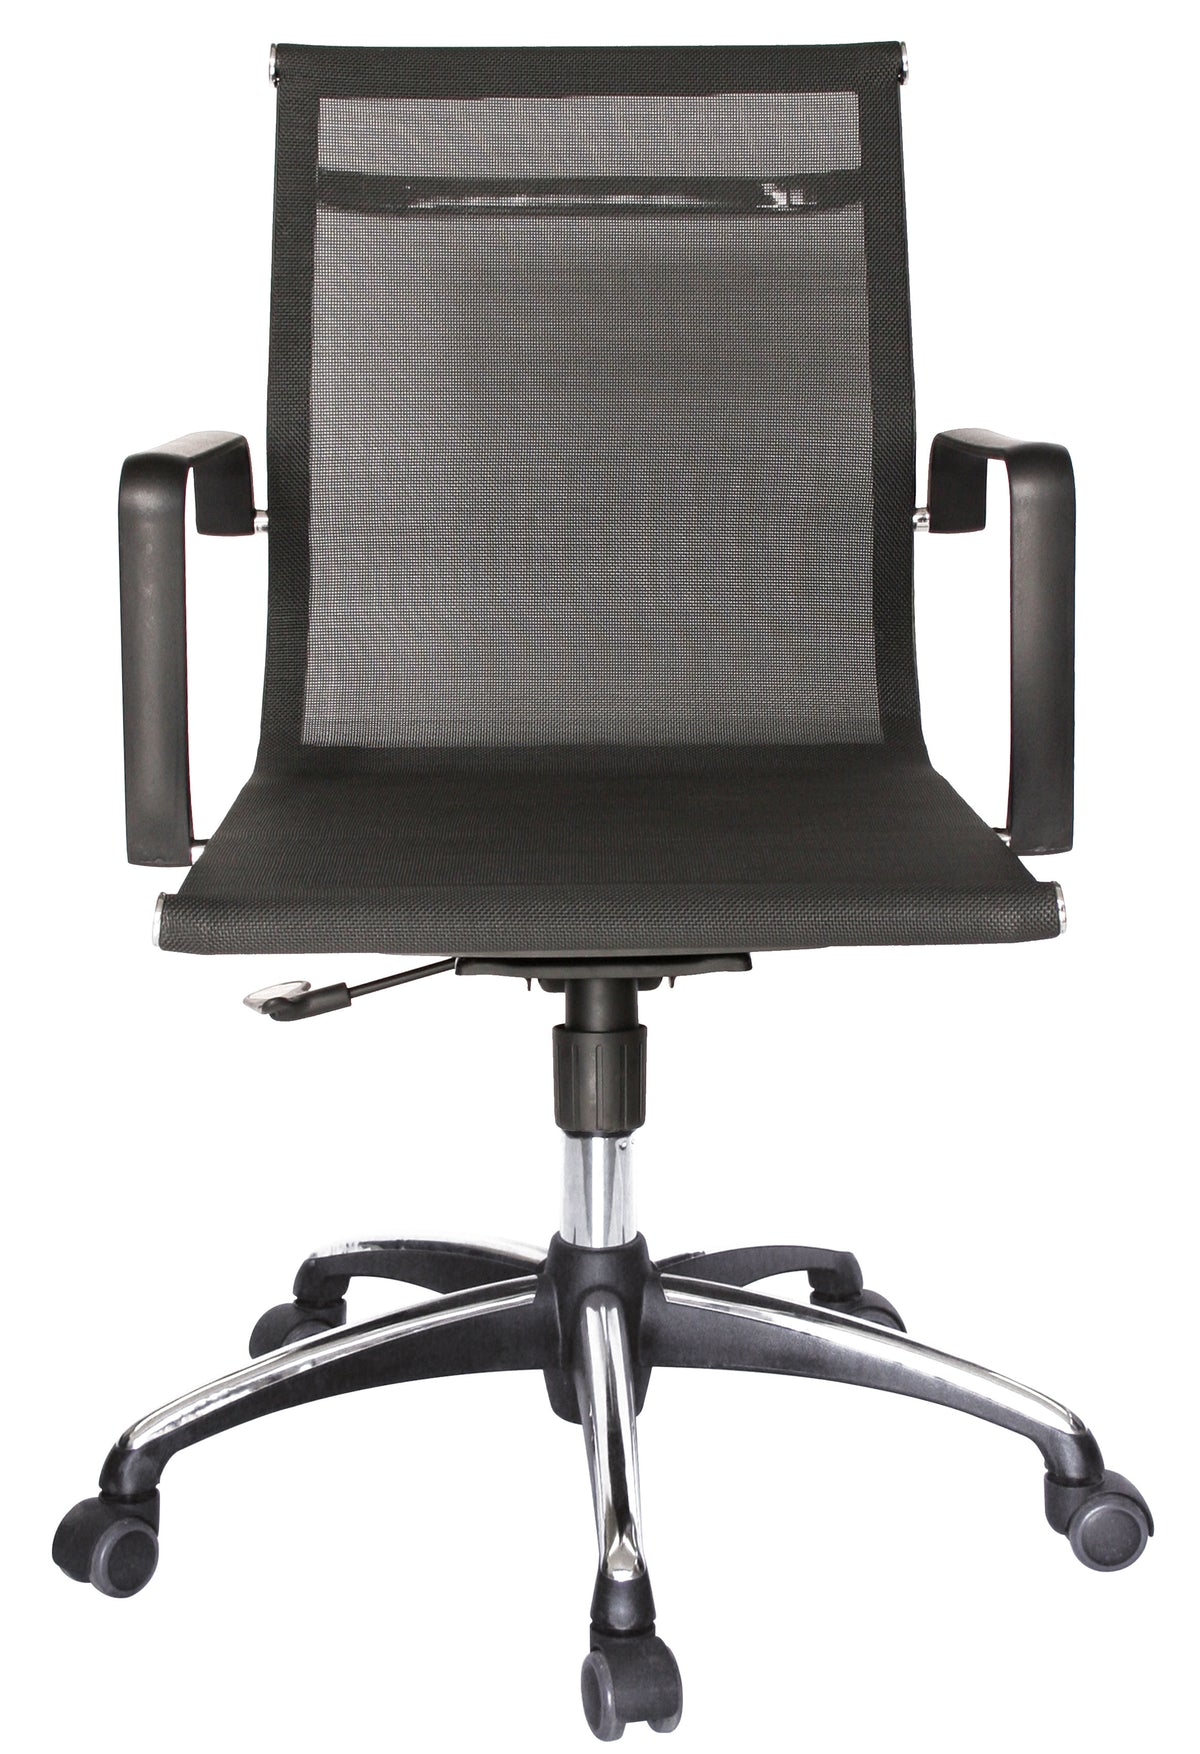 SILLA EJECUTIVA TRAVIS RB - offimobile